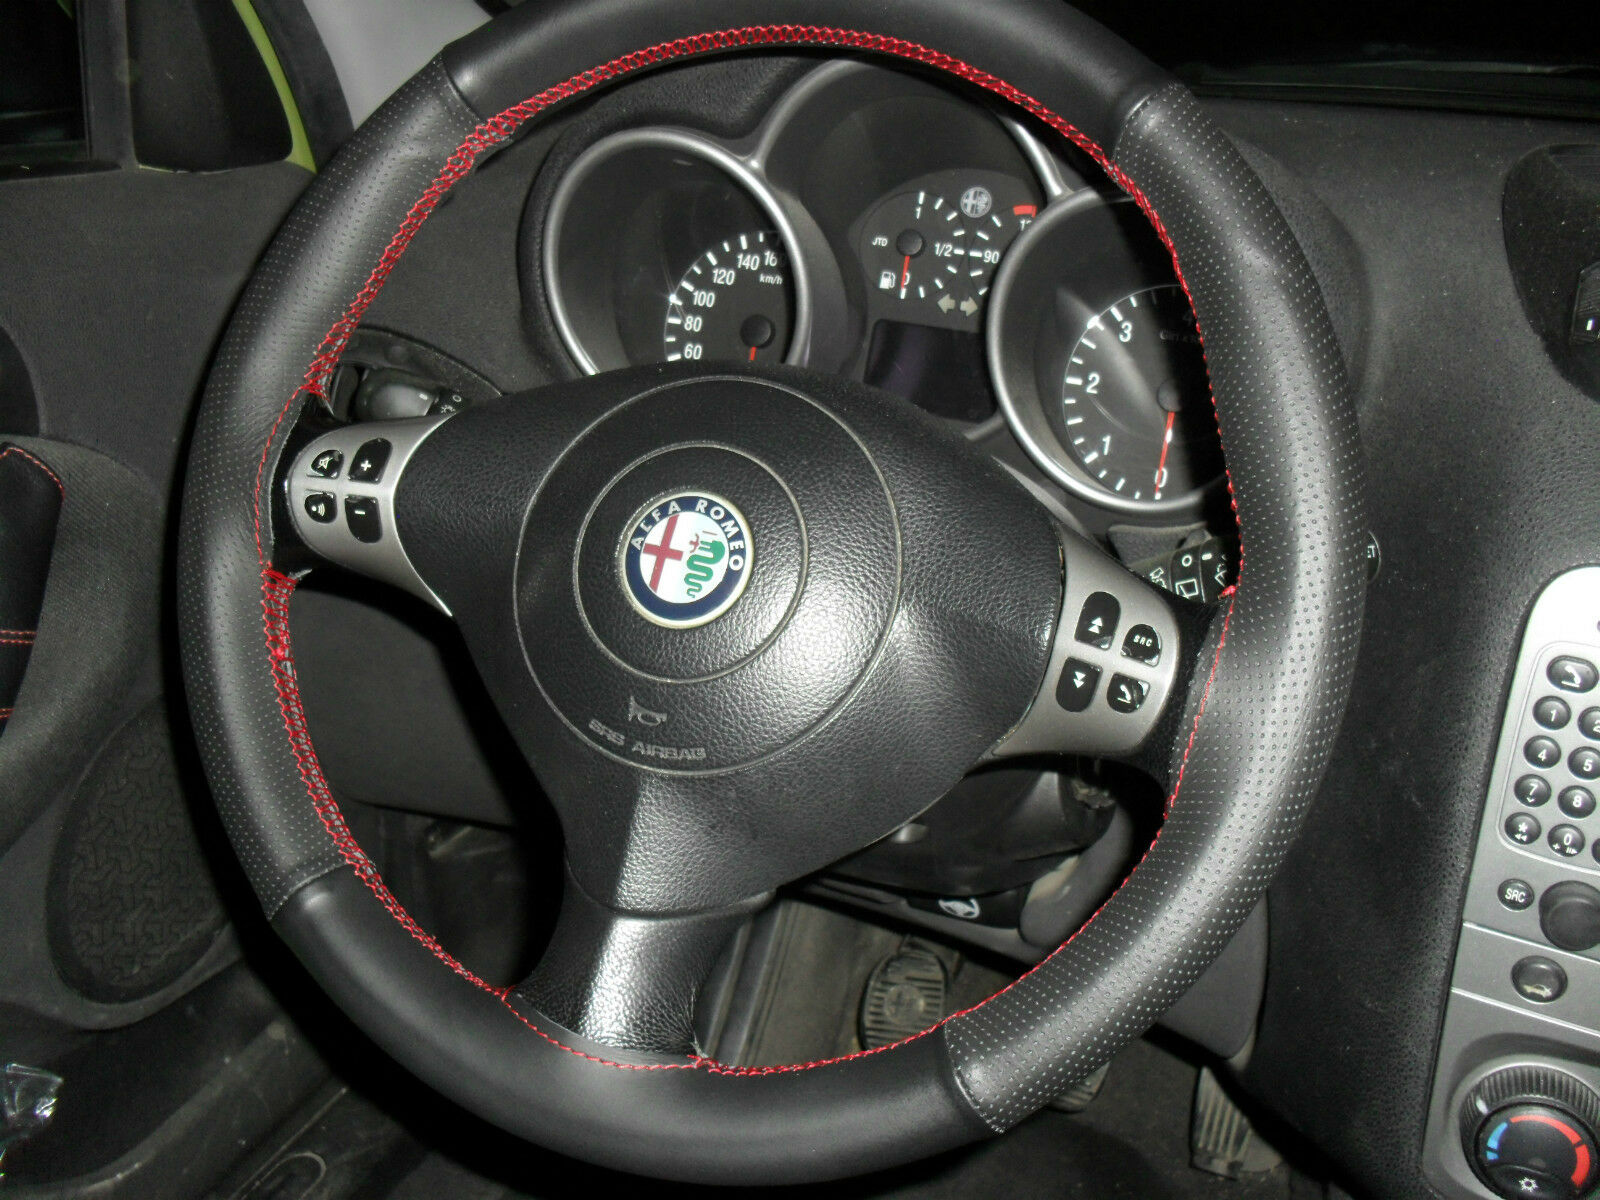 Alfa Romeo 147 Steering Wheel Cover Aus Schwarzem Leather Red Norton Secured Powered By Verisign